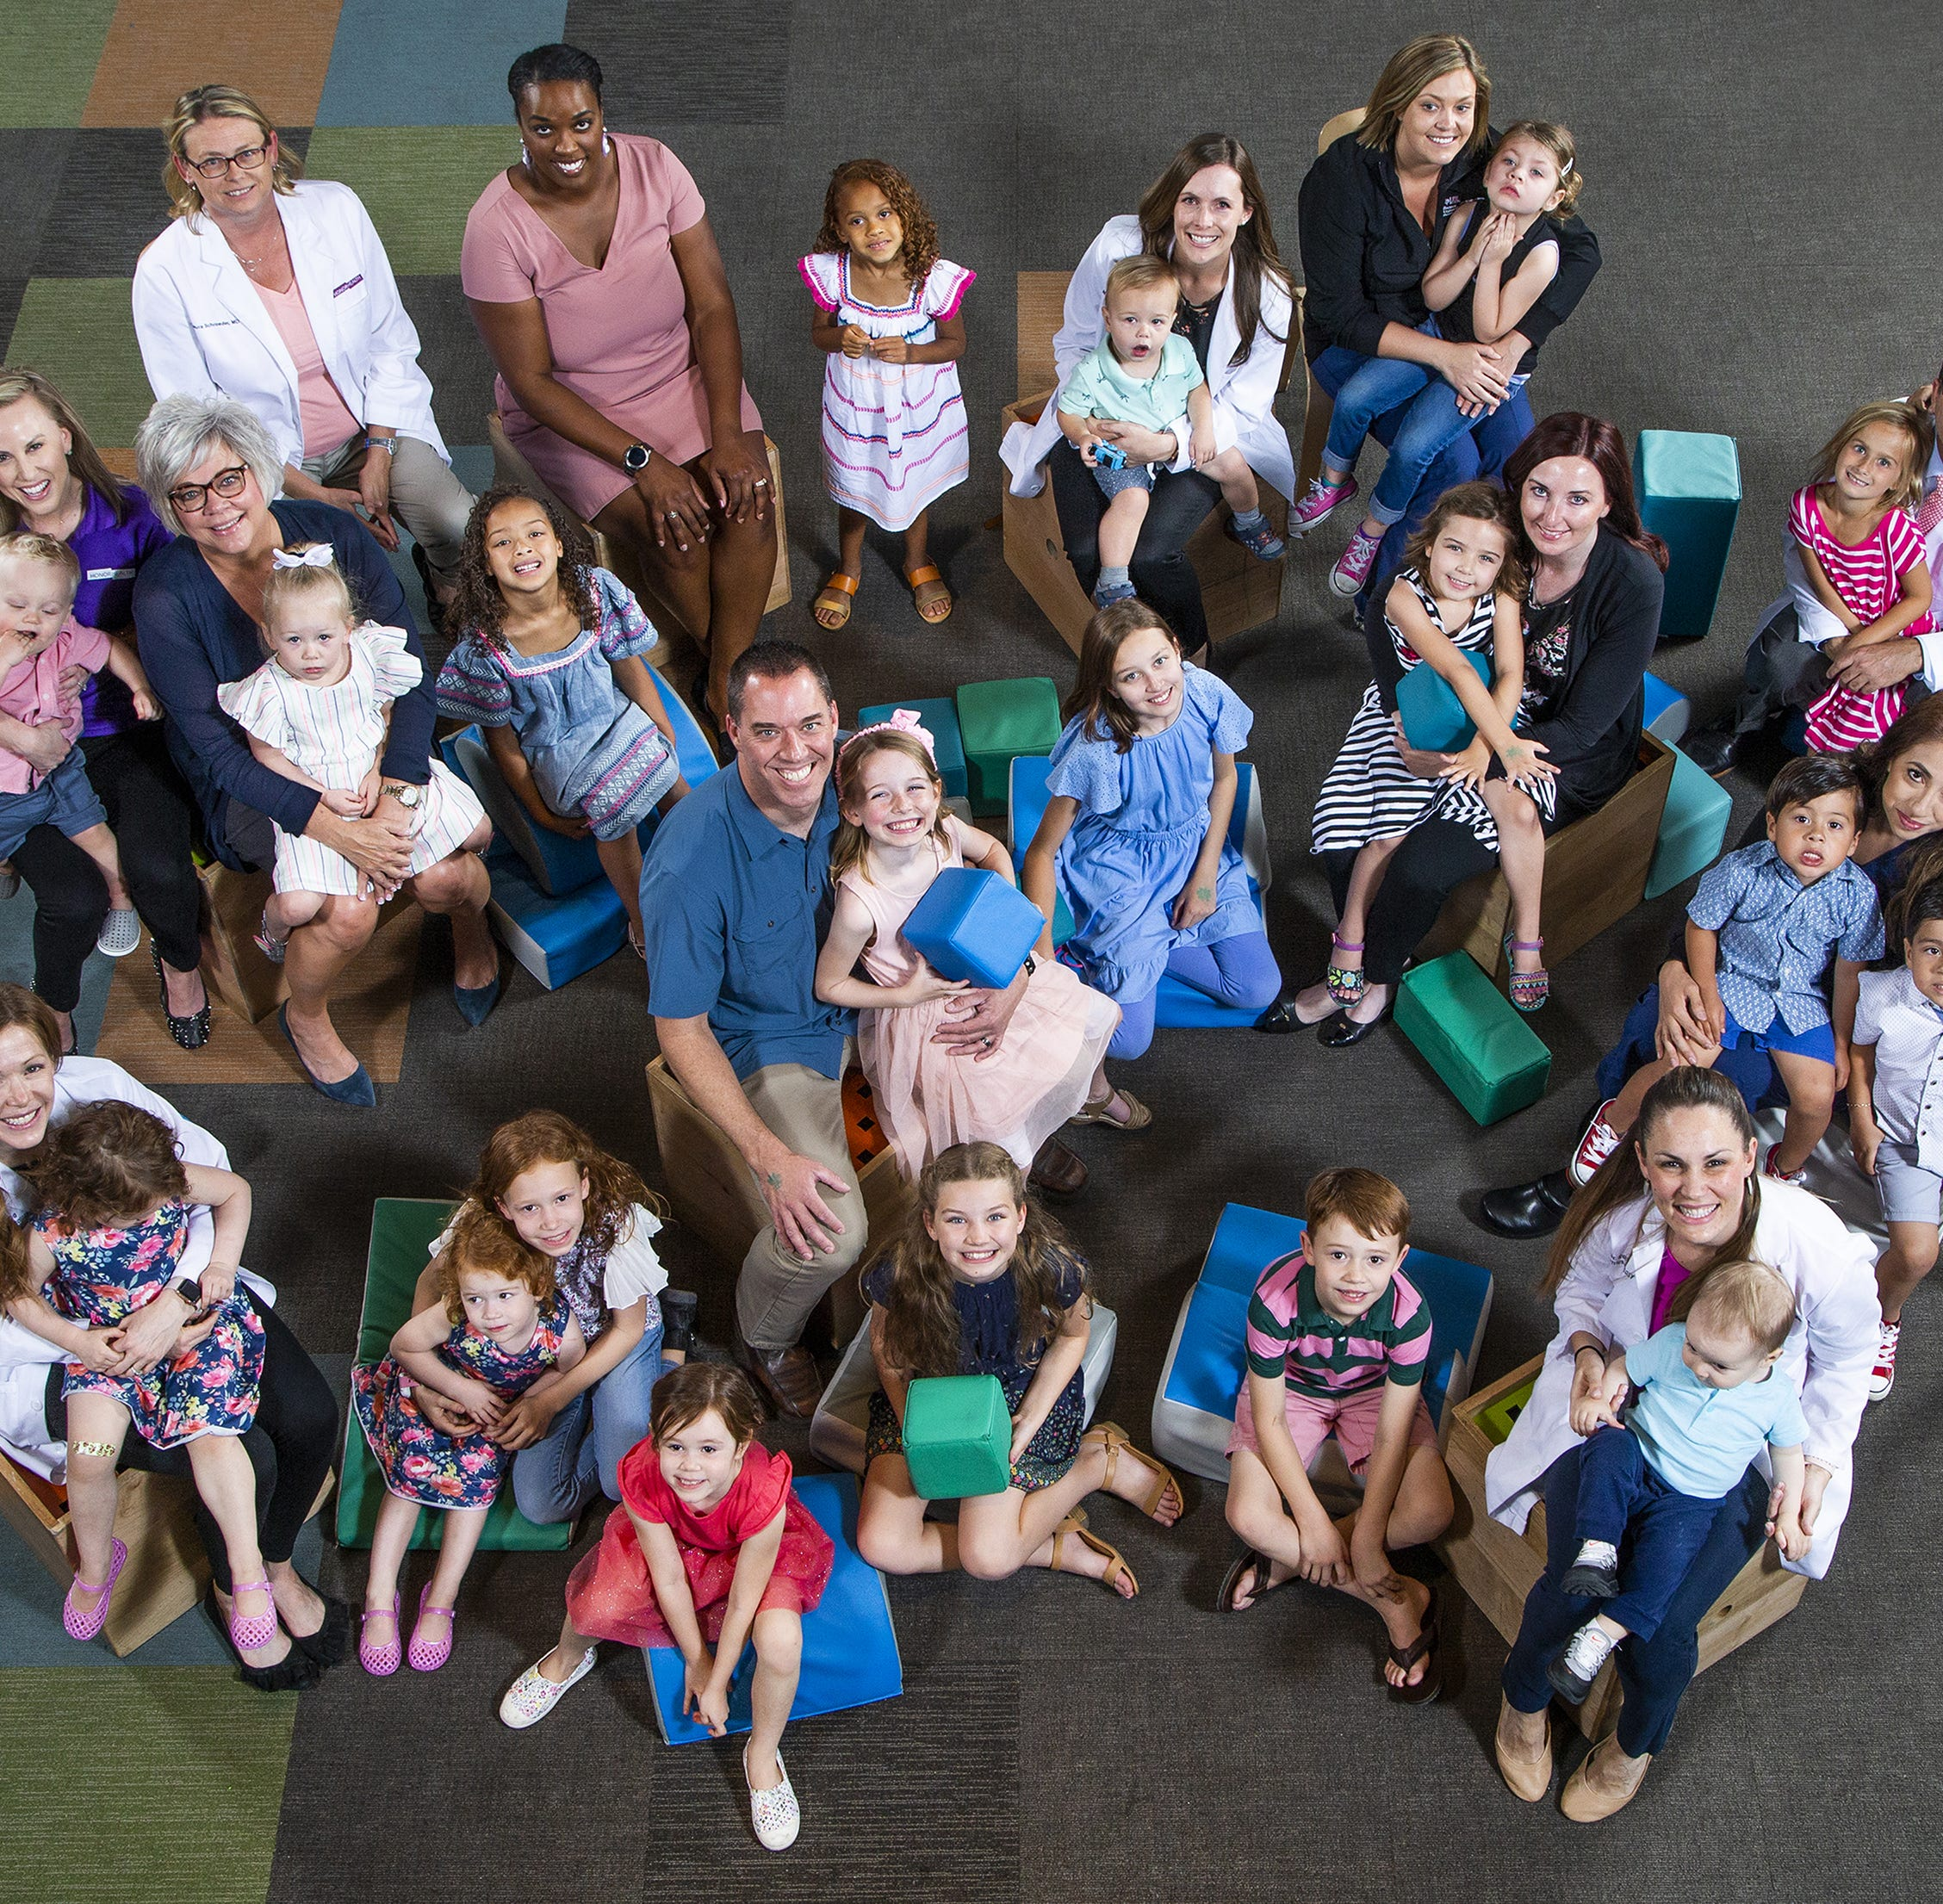 These Arizona doctors and nurses vaccinated their kids. What about you?